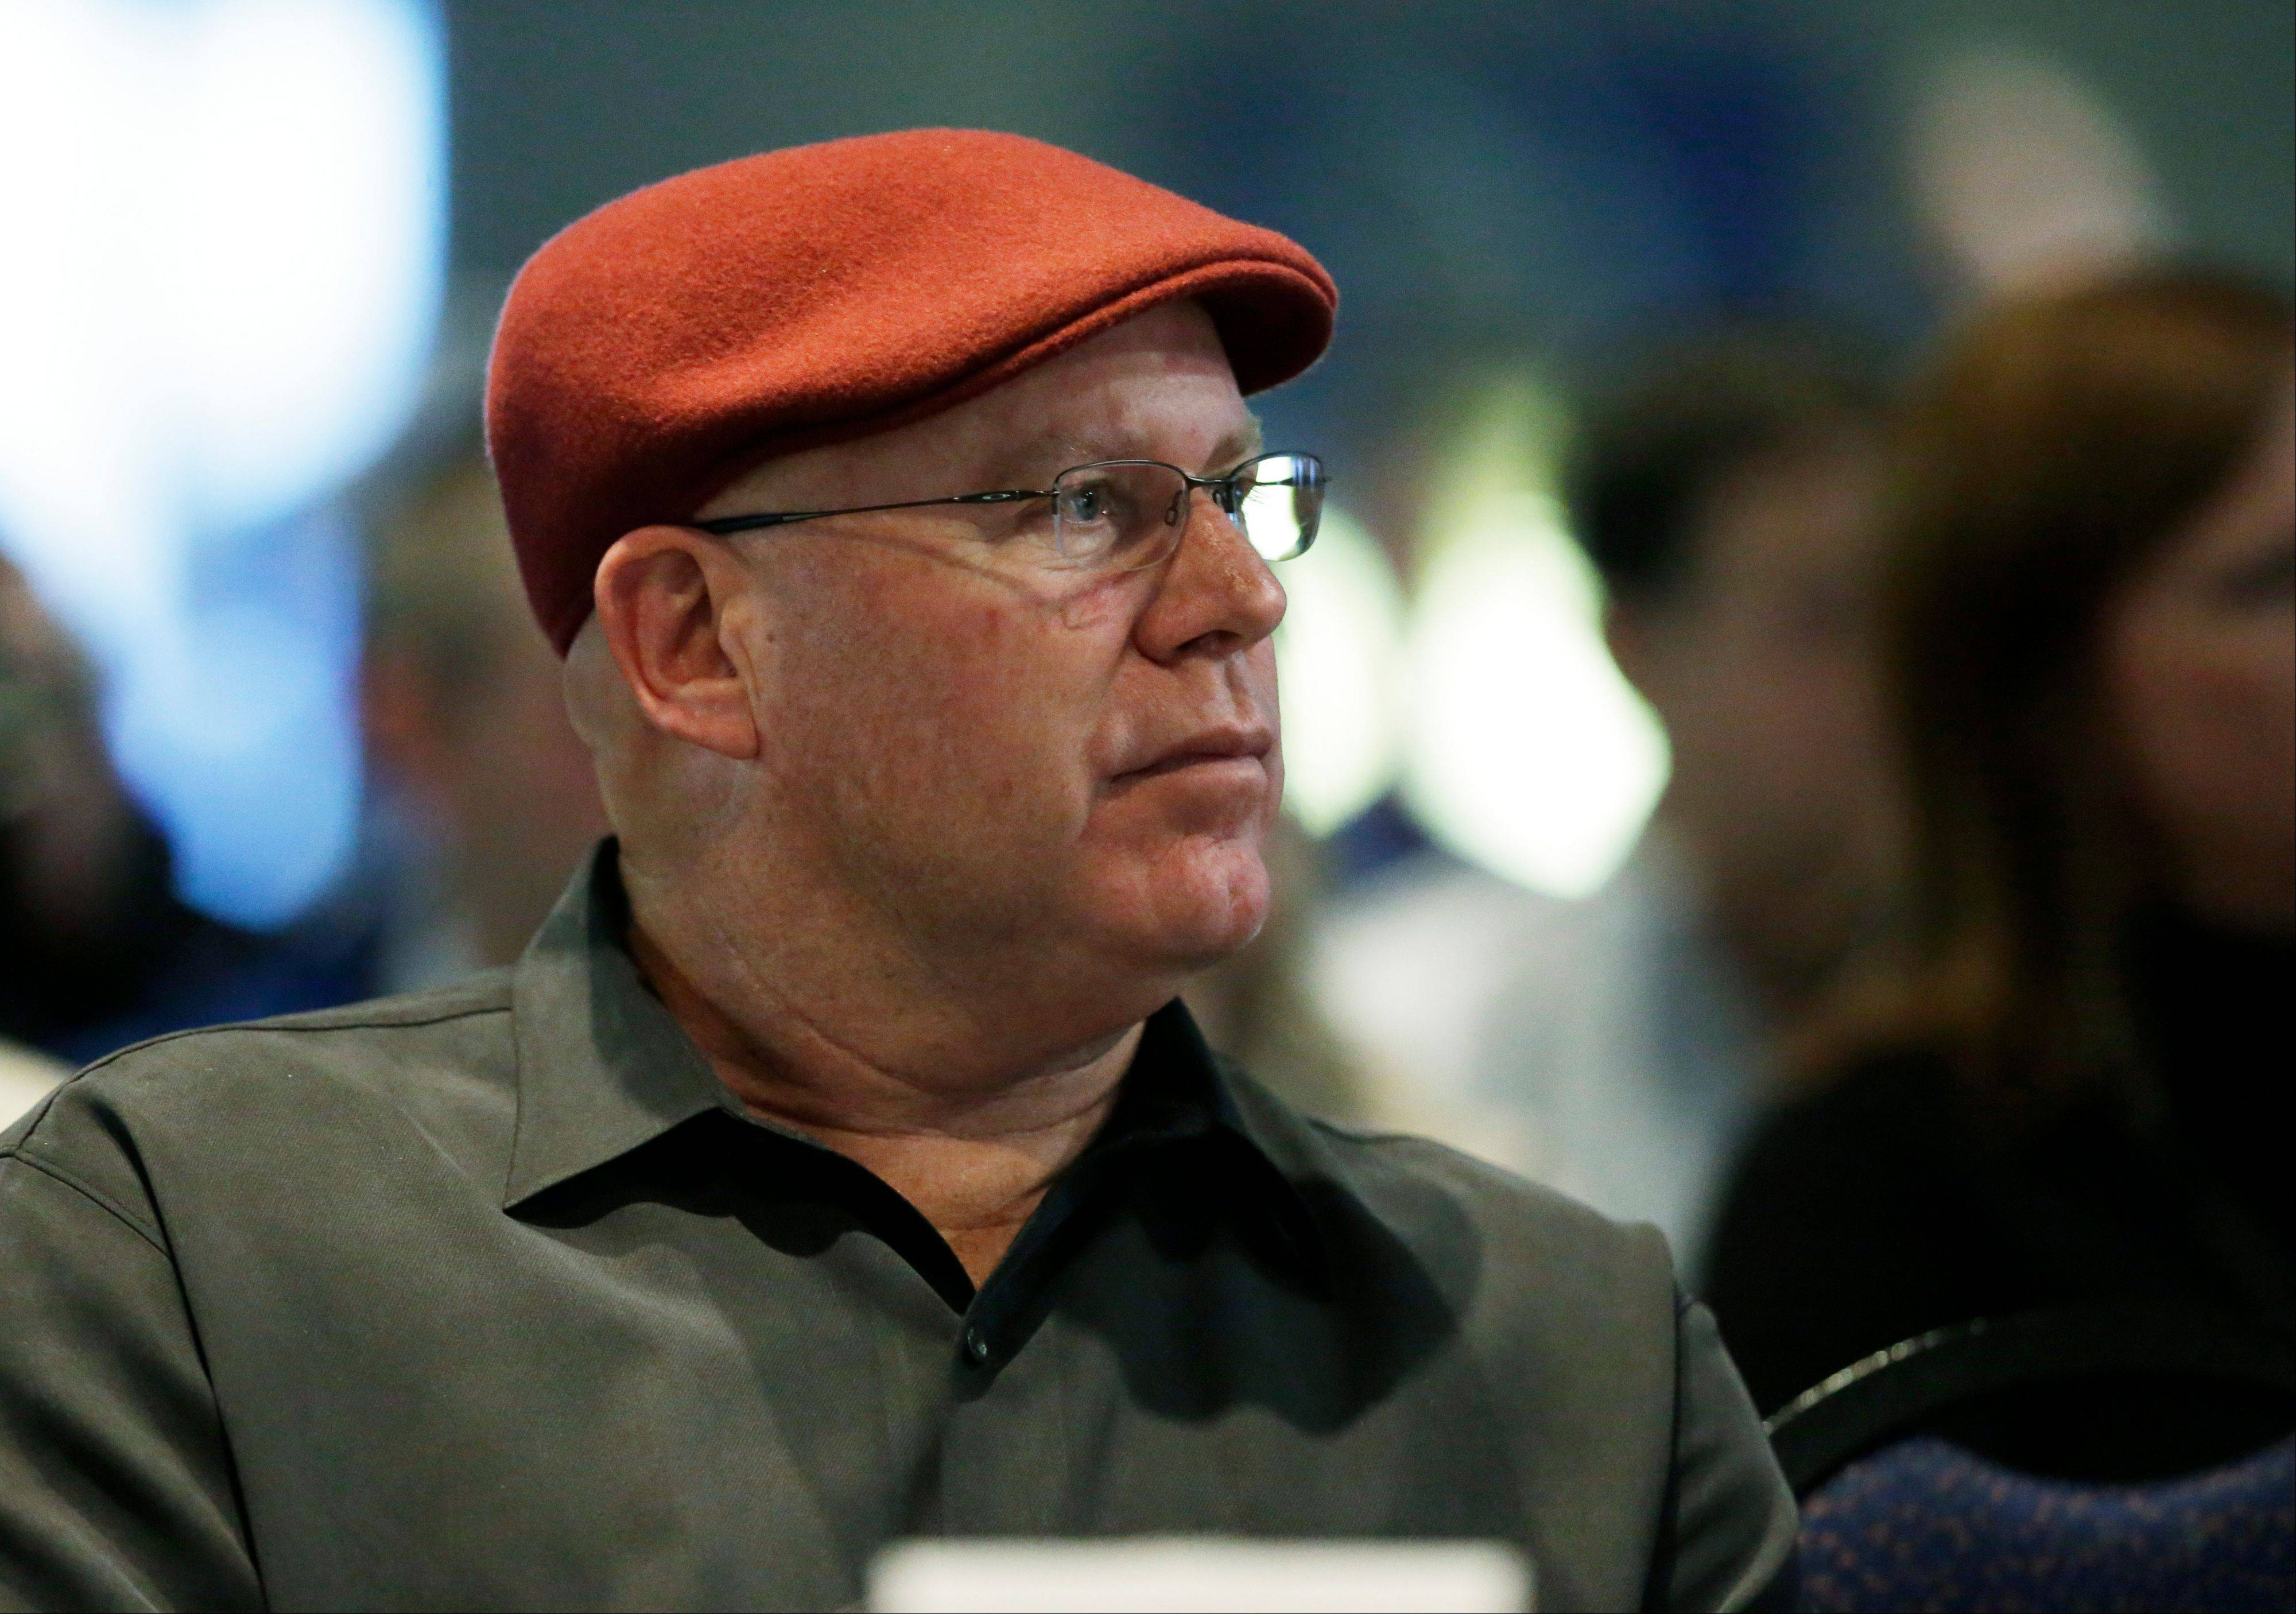 Indianapolis Colts offensive coordinator Bruce Arians